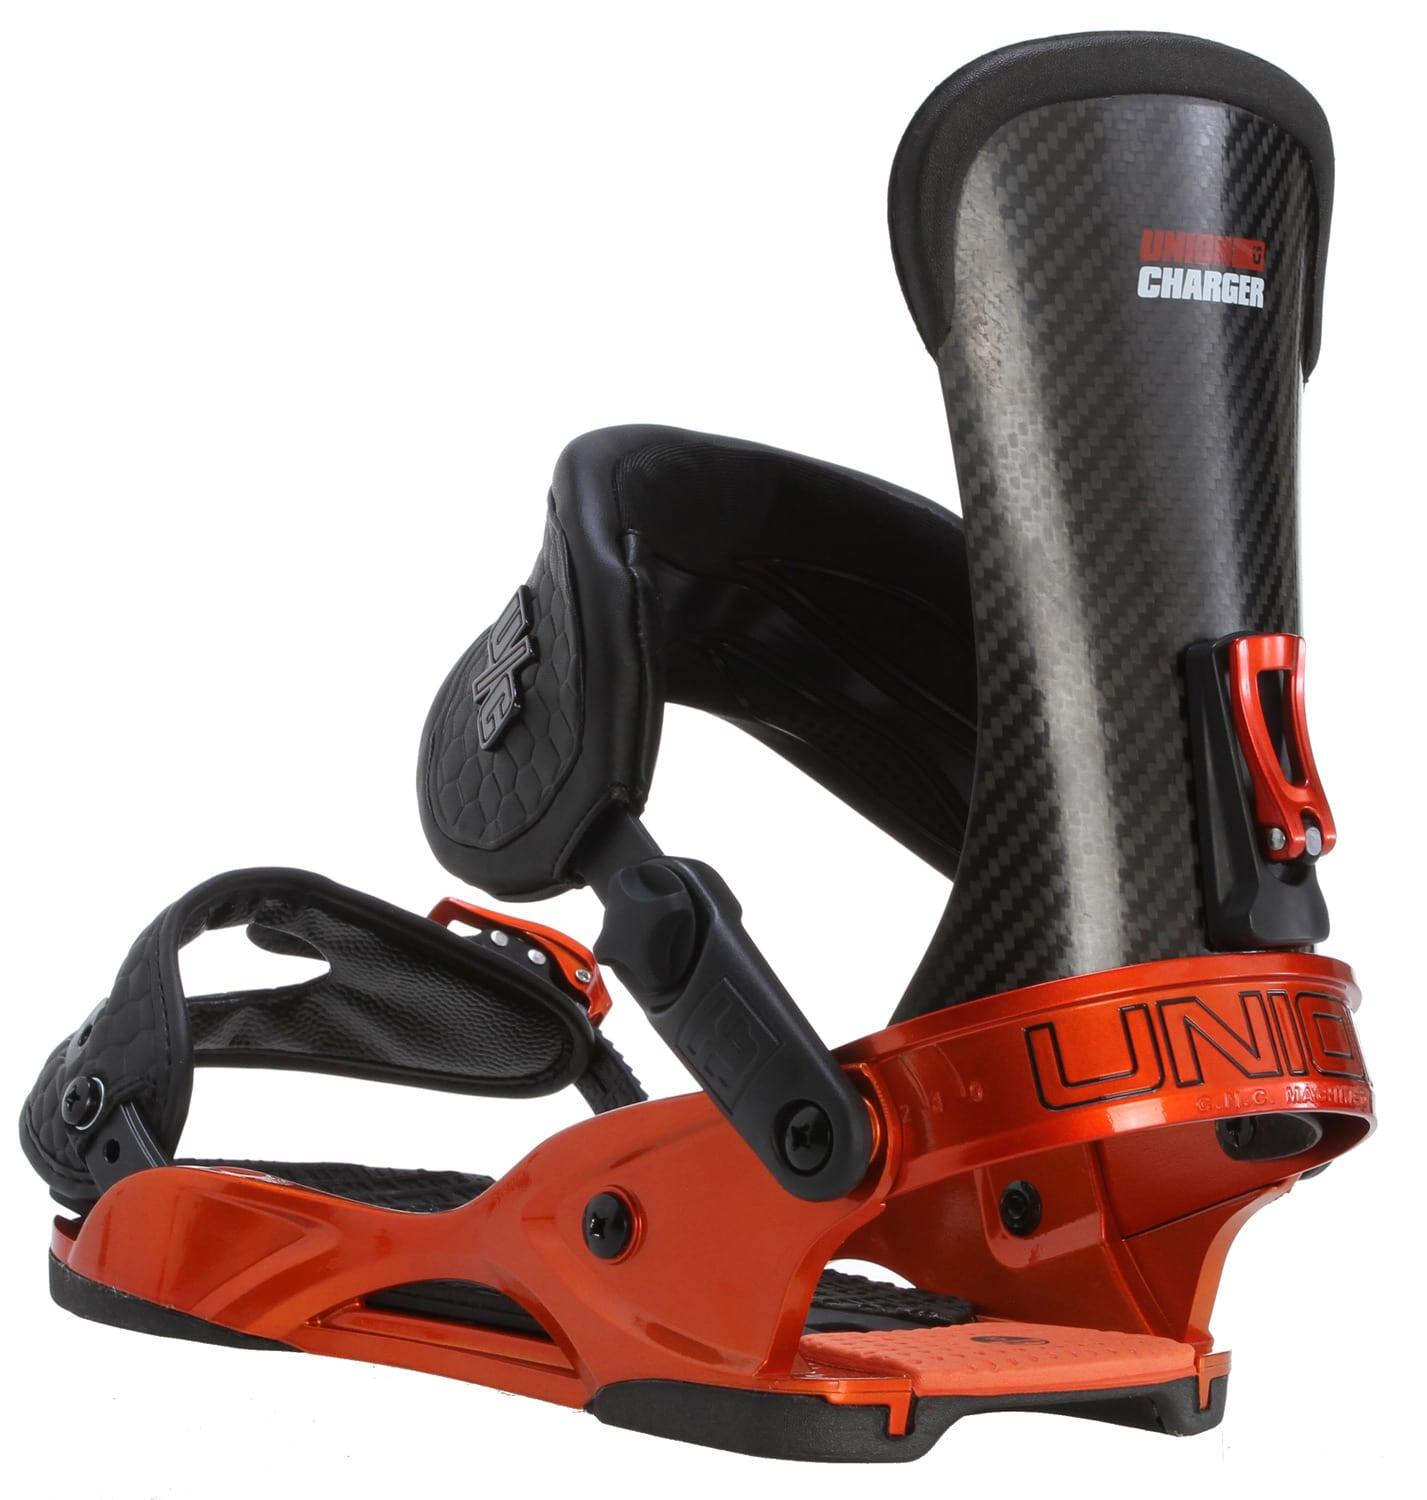 Union Charger Snowboard Bindings